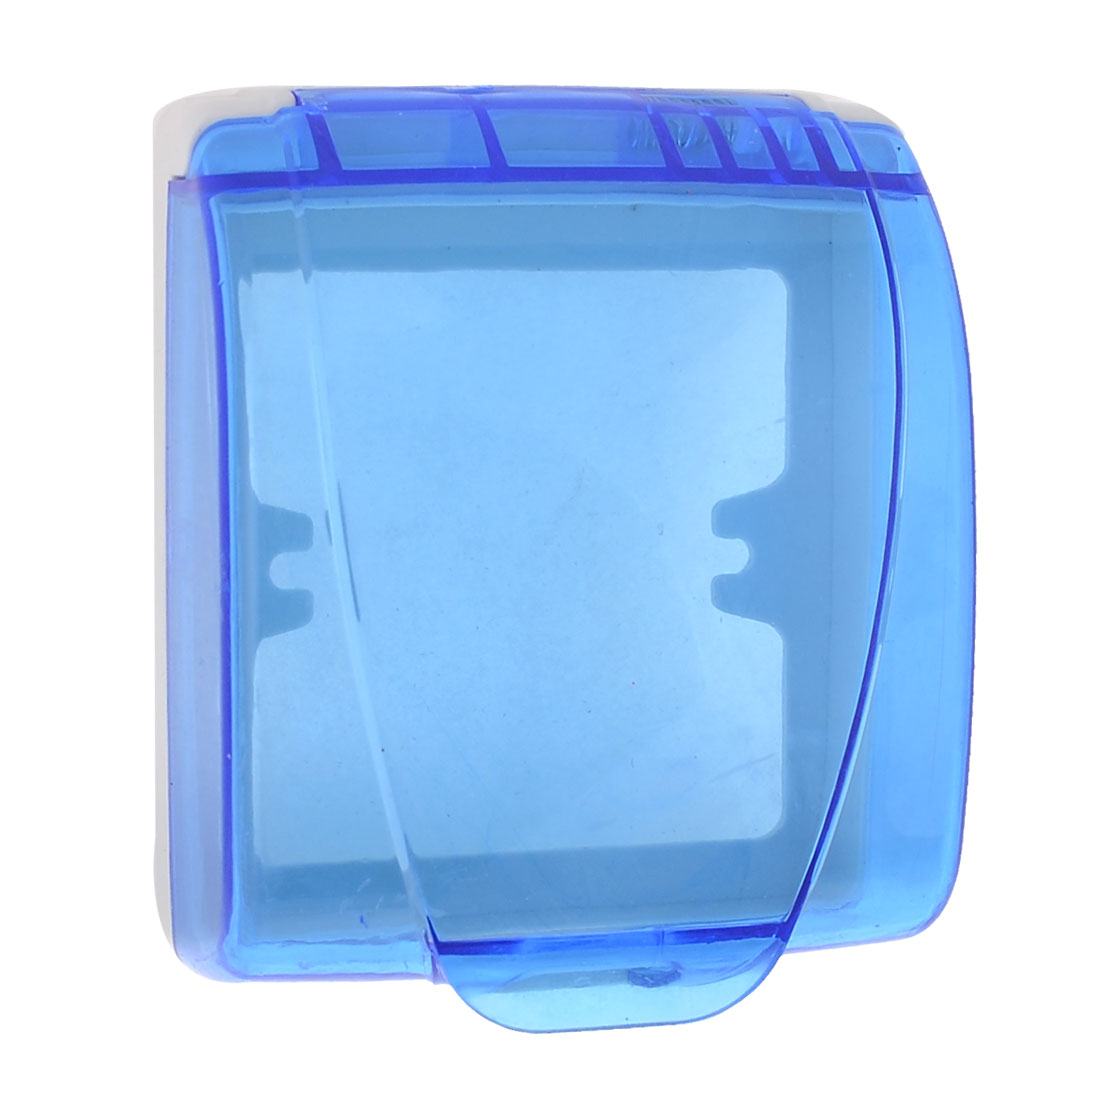 Wall Switch Flip Lid Blue Splash Proof Cover Box